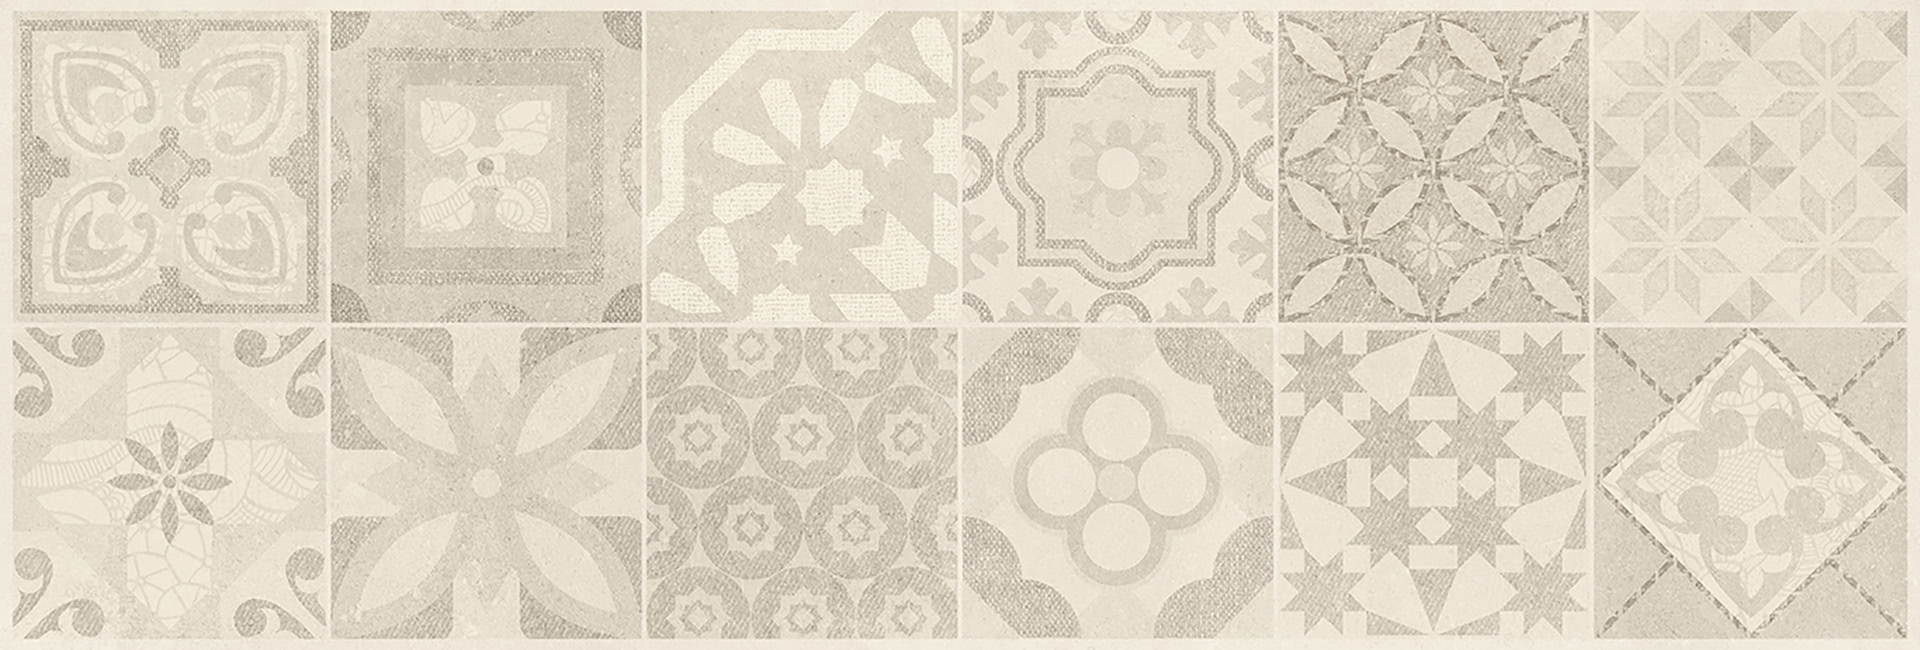 Arkety tile collection by Baldocer | TileScout